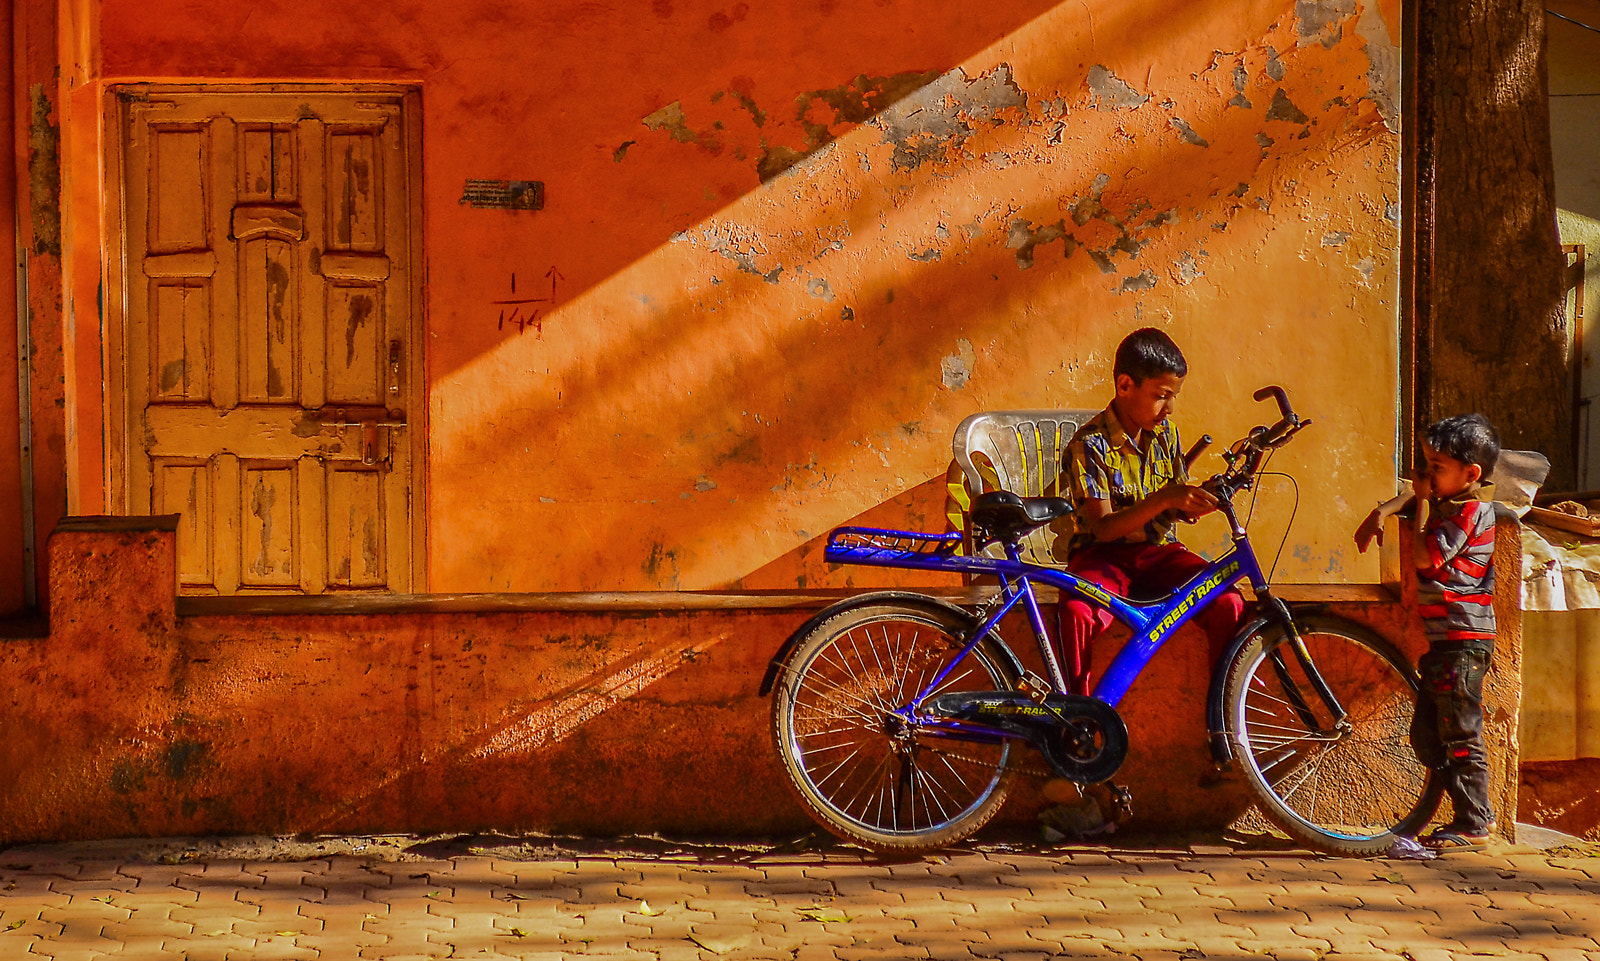 Photograph Bros by Mahesh Shenoy on 500px